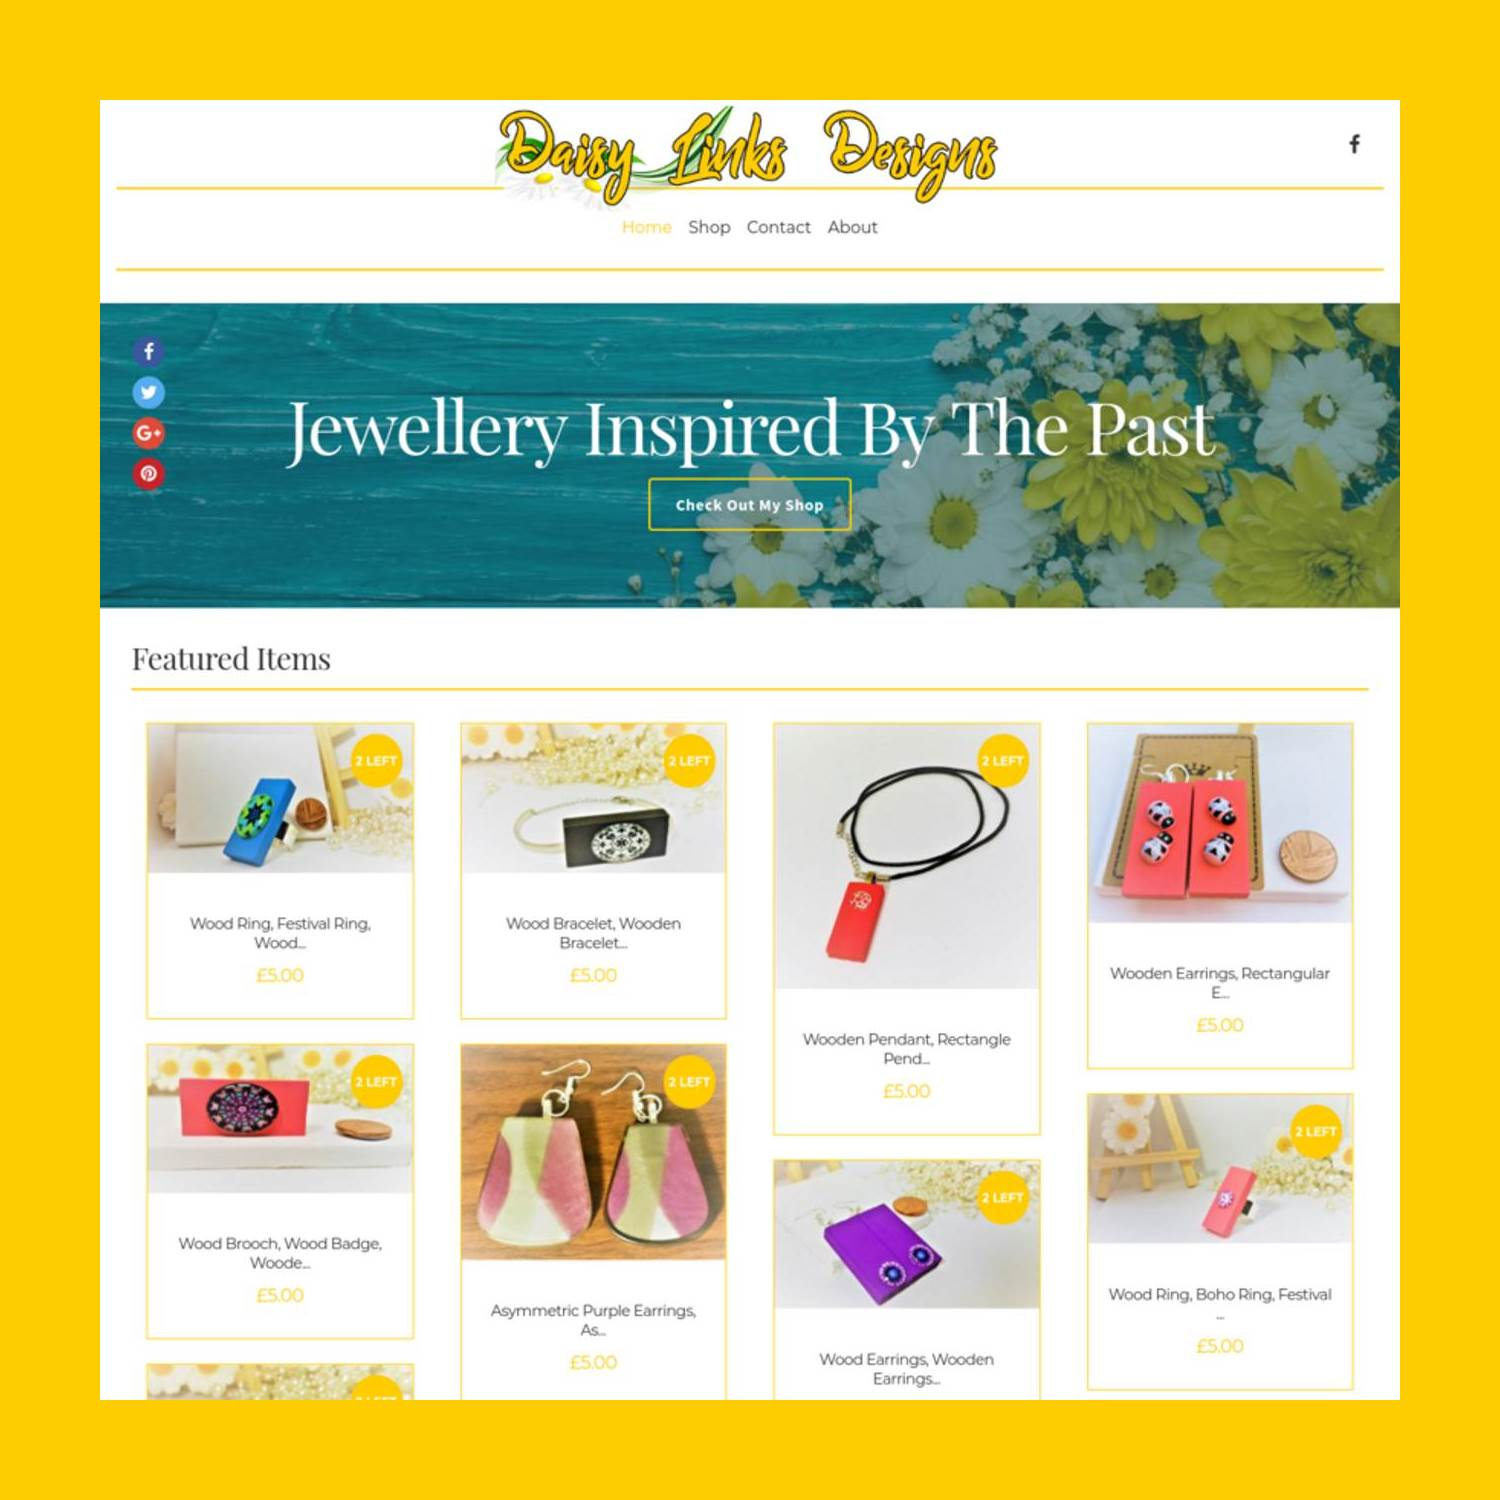 Daisy Links Designs Website